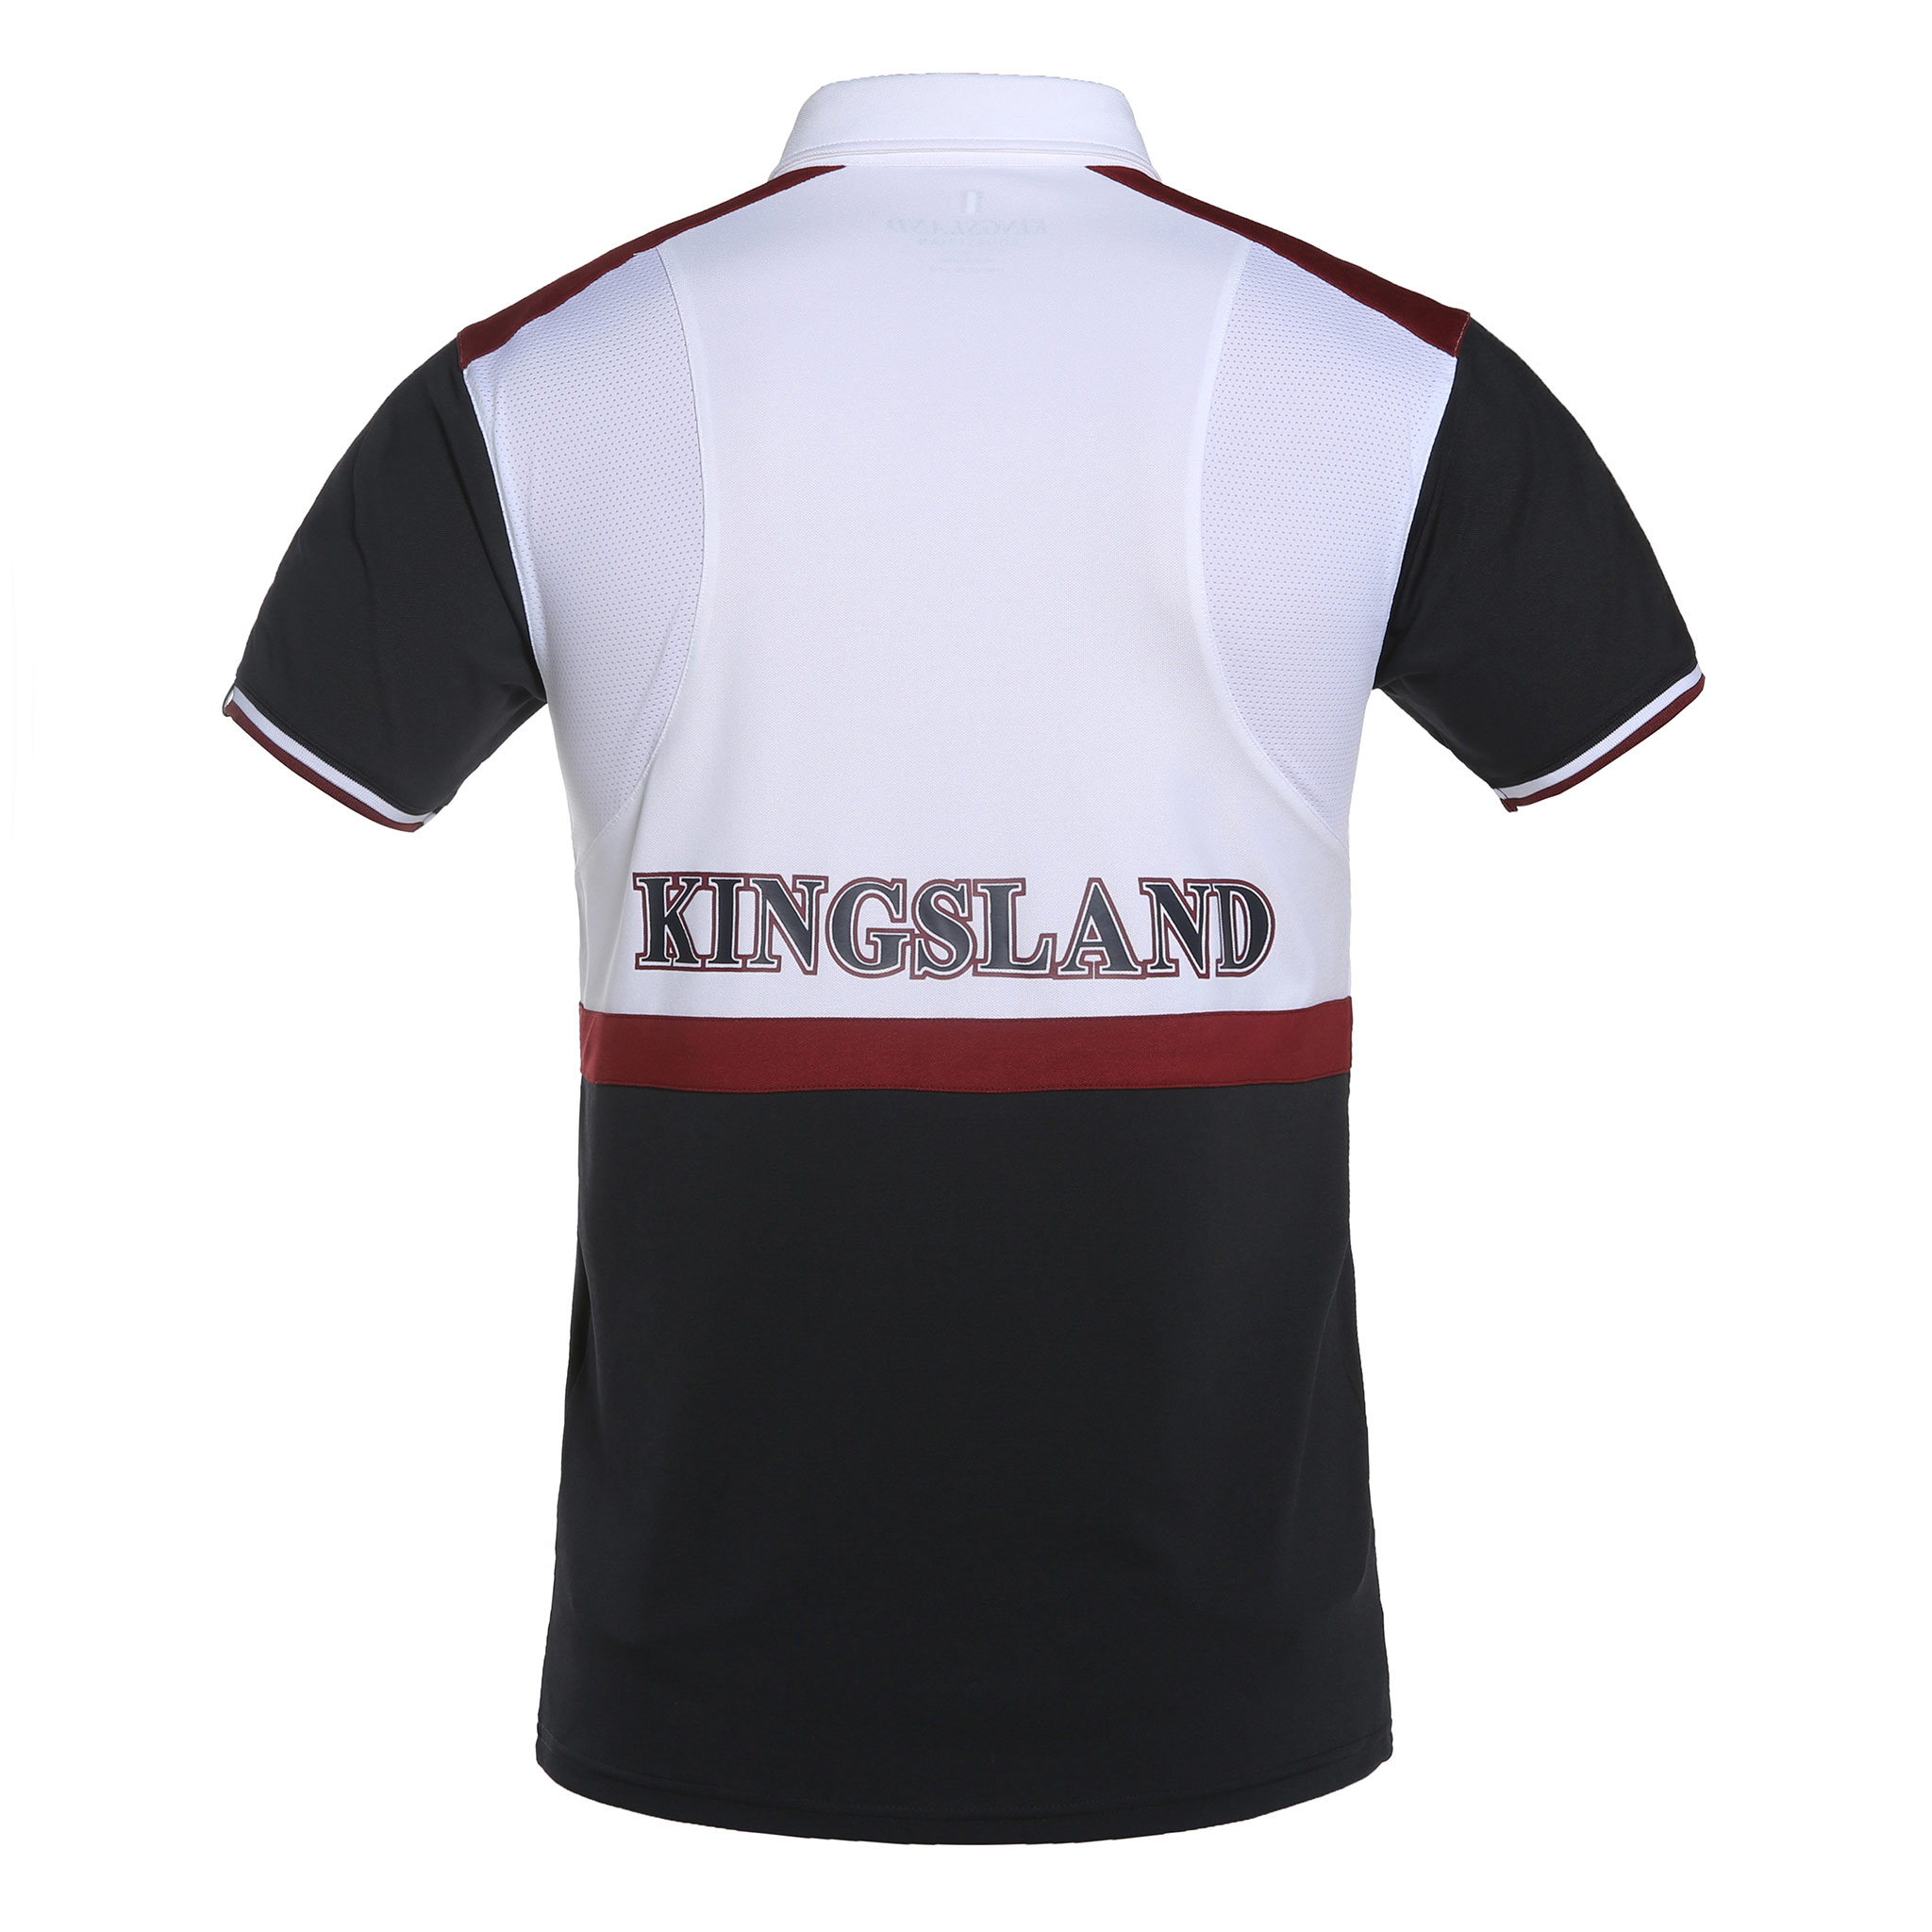 KINGSLAND ROCK NAVY MENS SHOW SHIRT